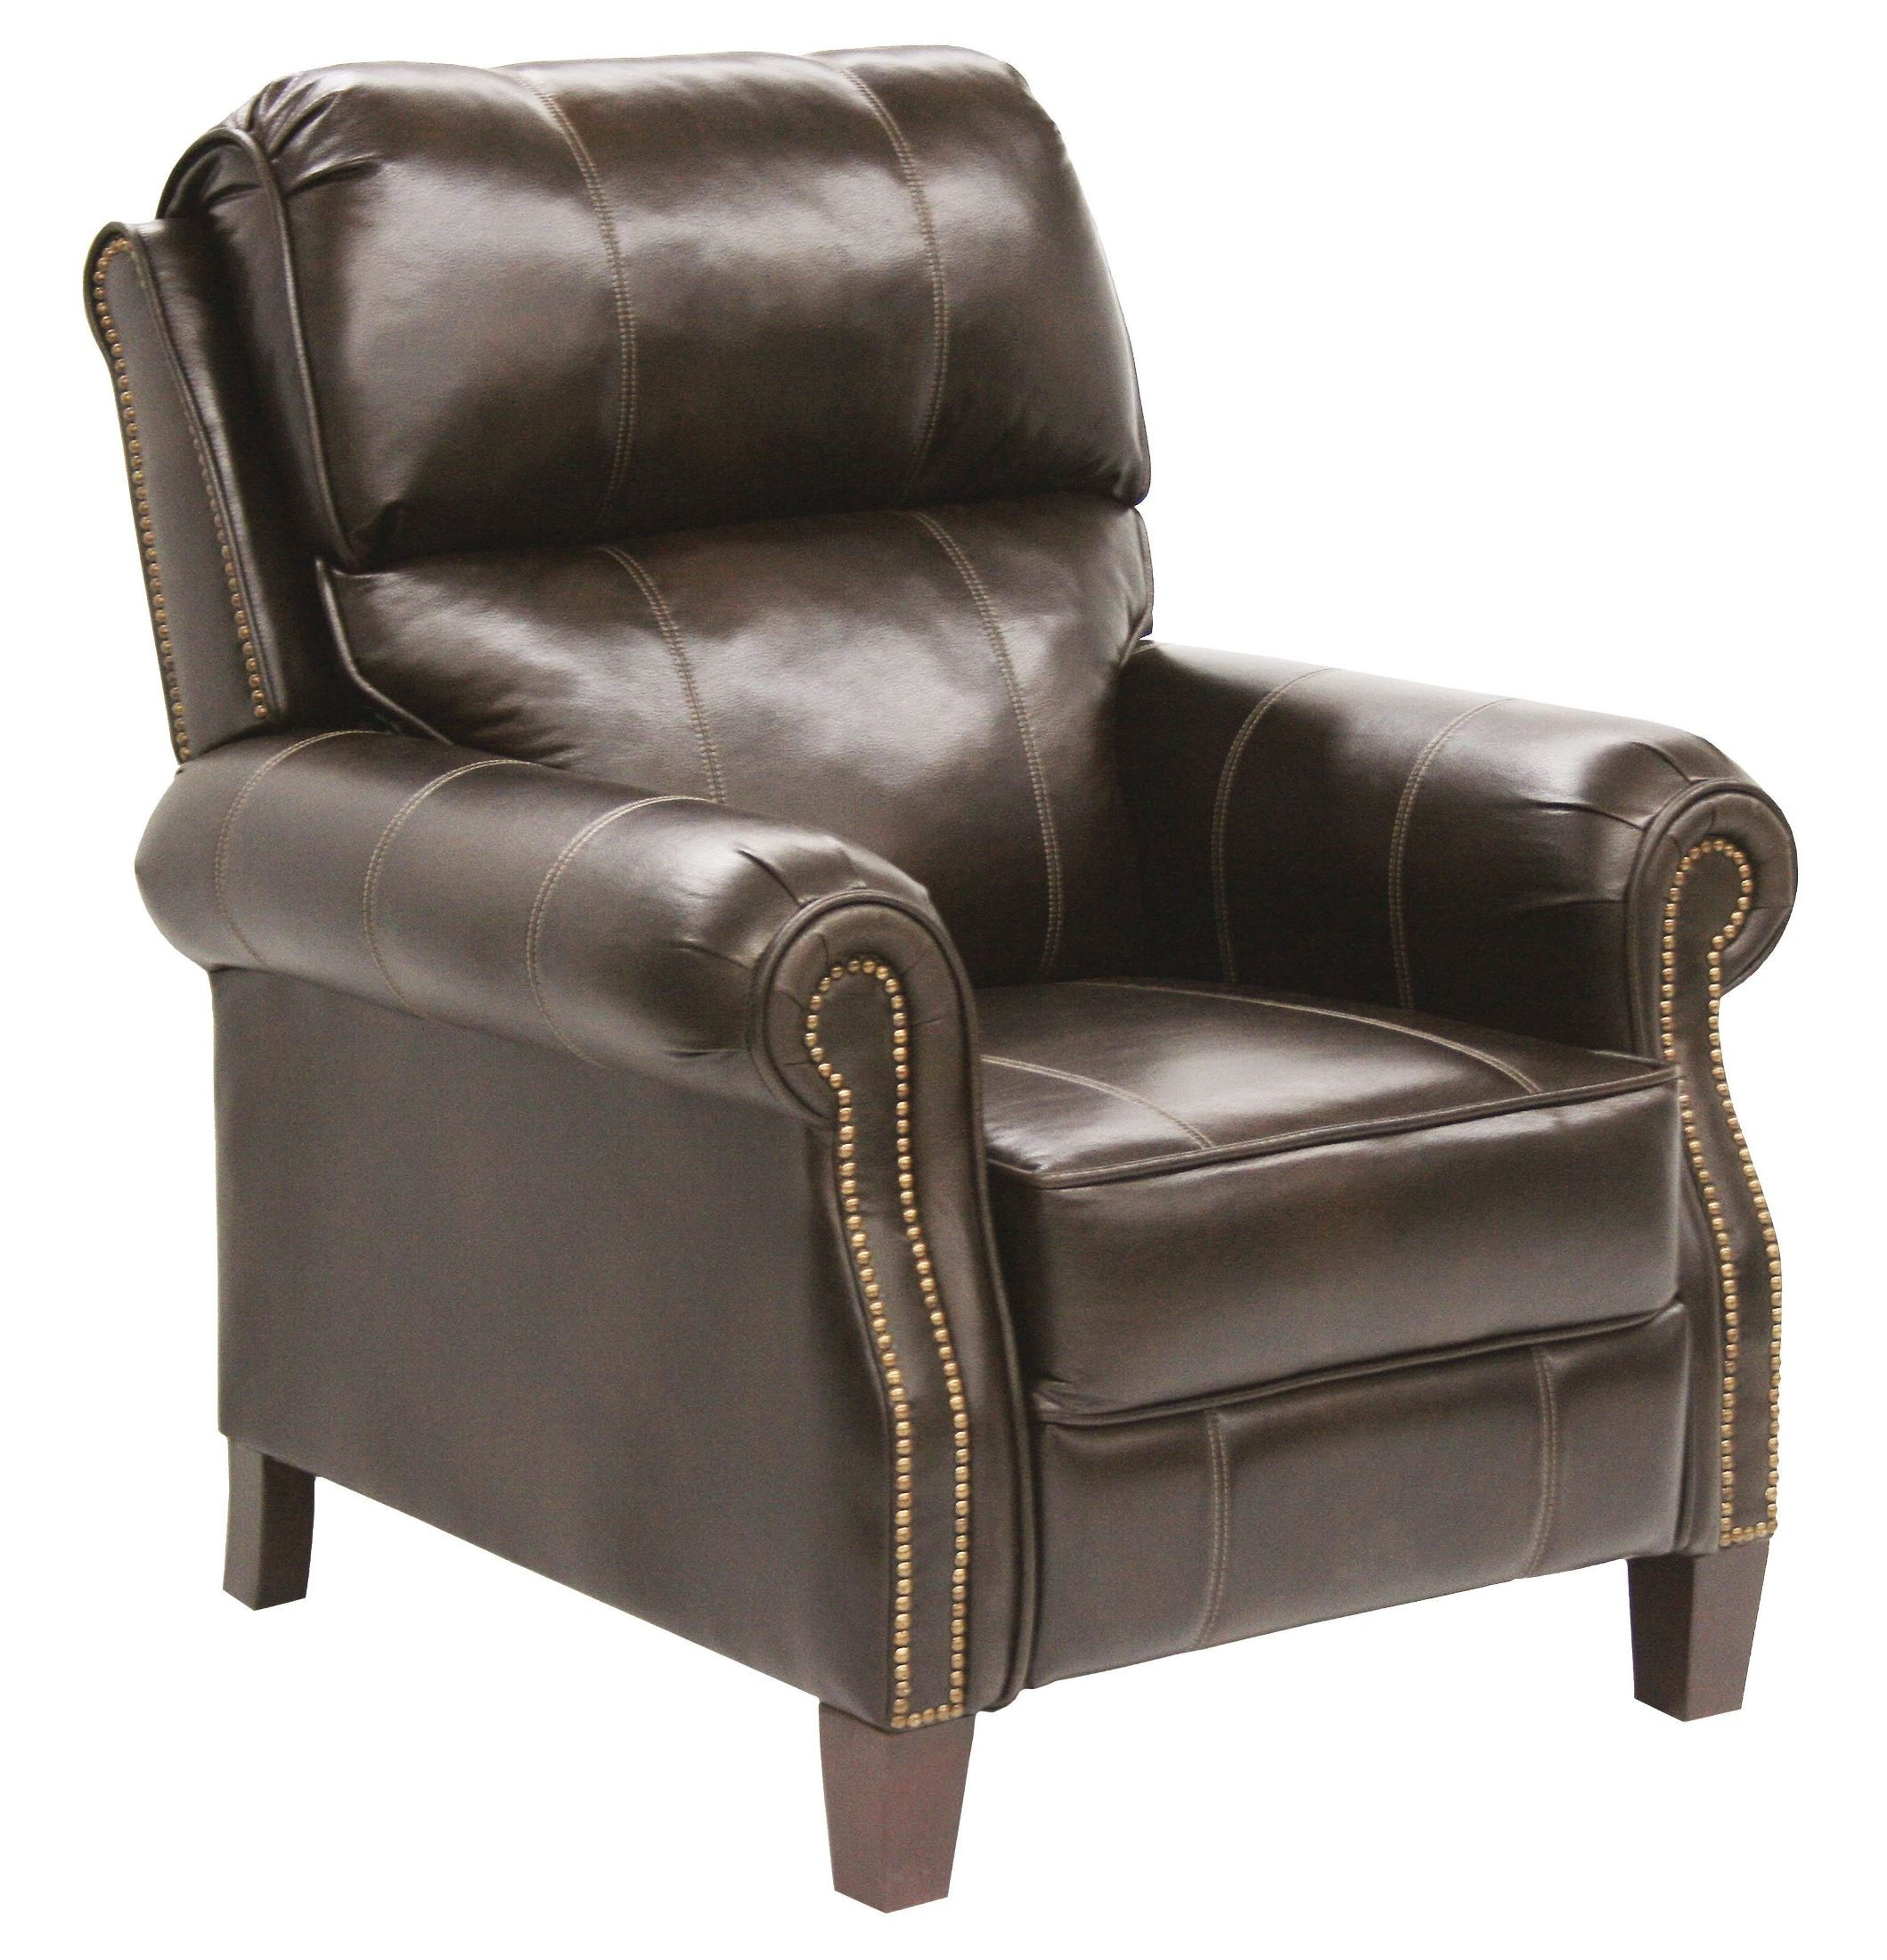 Frazier java bonded leather reclining chair from catnapper for Catnapper cloud nine chaise recliner